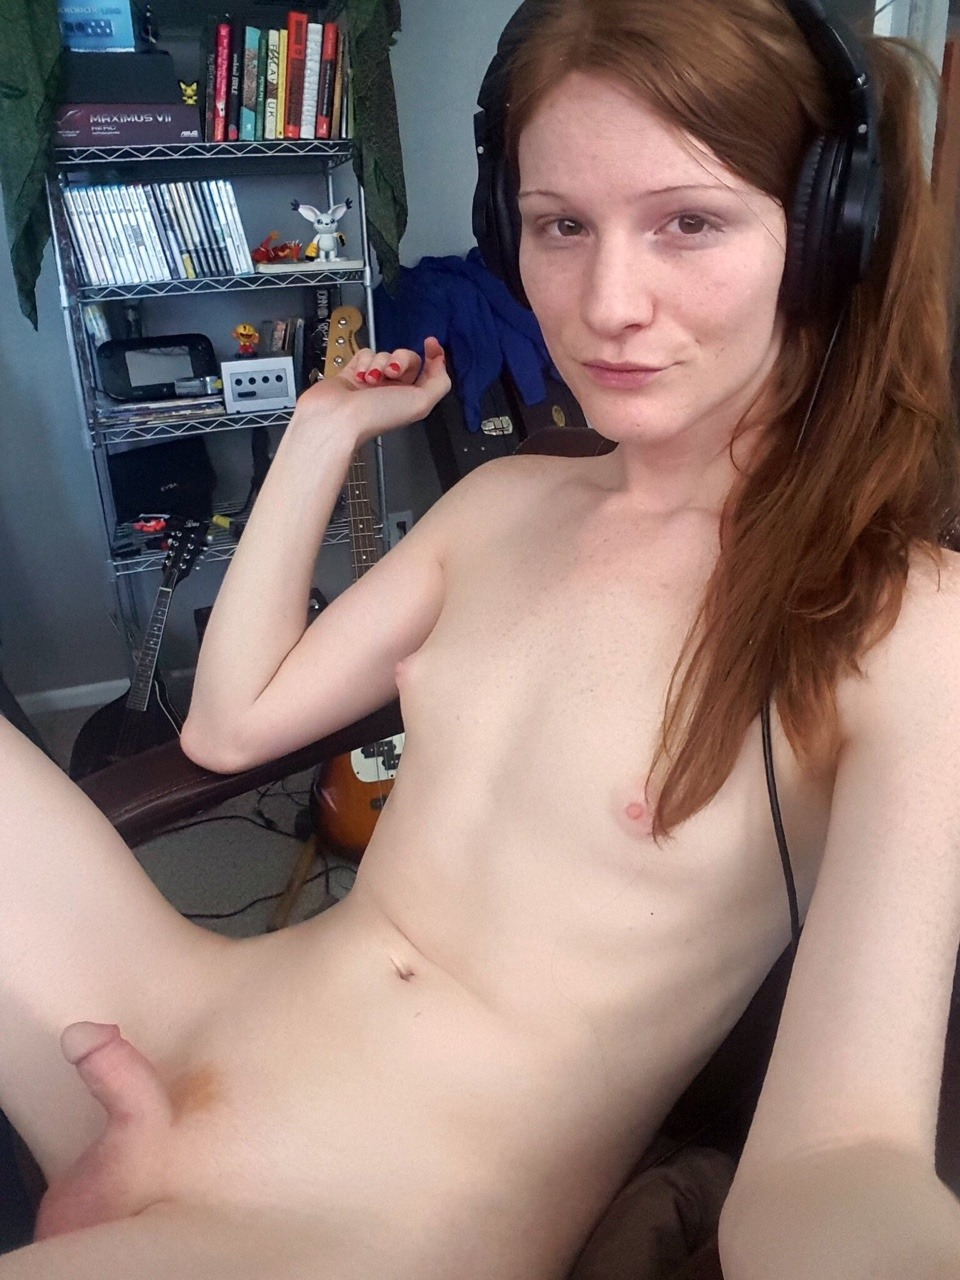 tumblr nude milf before and after